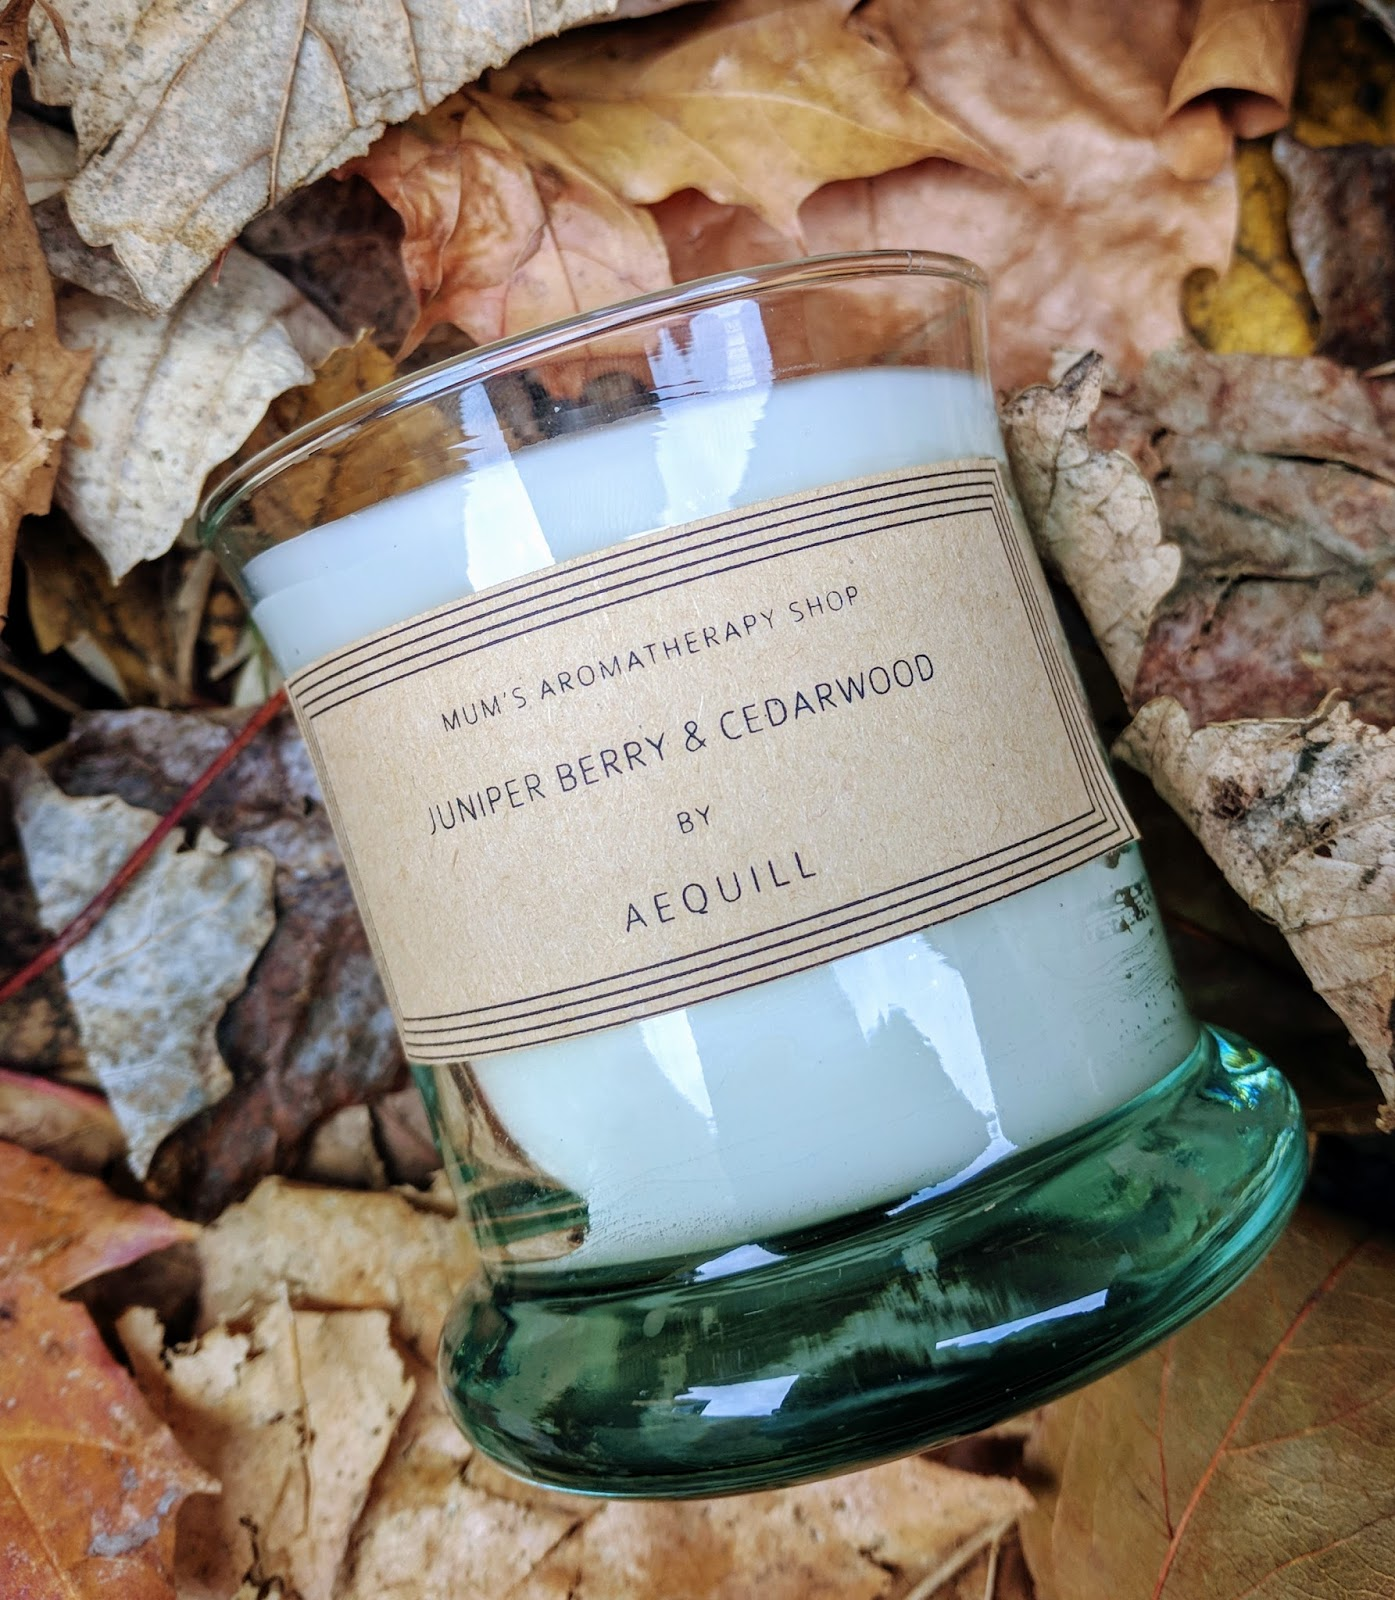 Aequill Juniper Berry and Cedarwood Candle